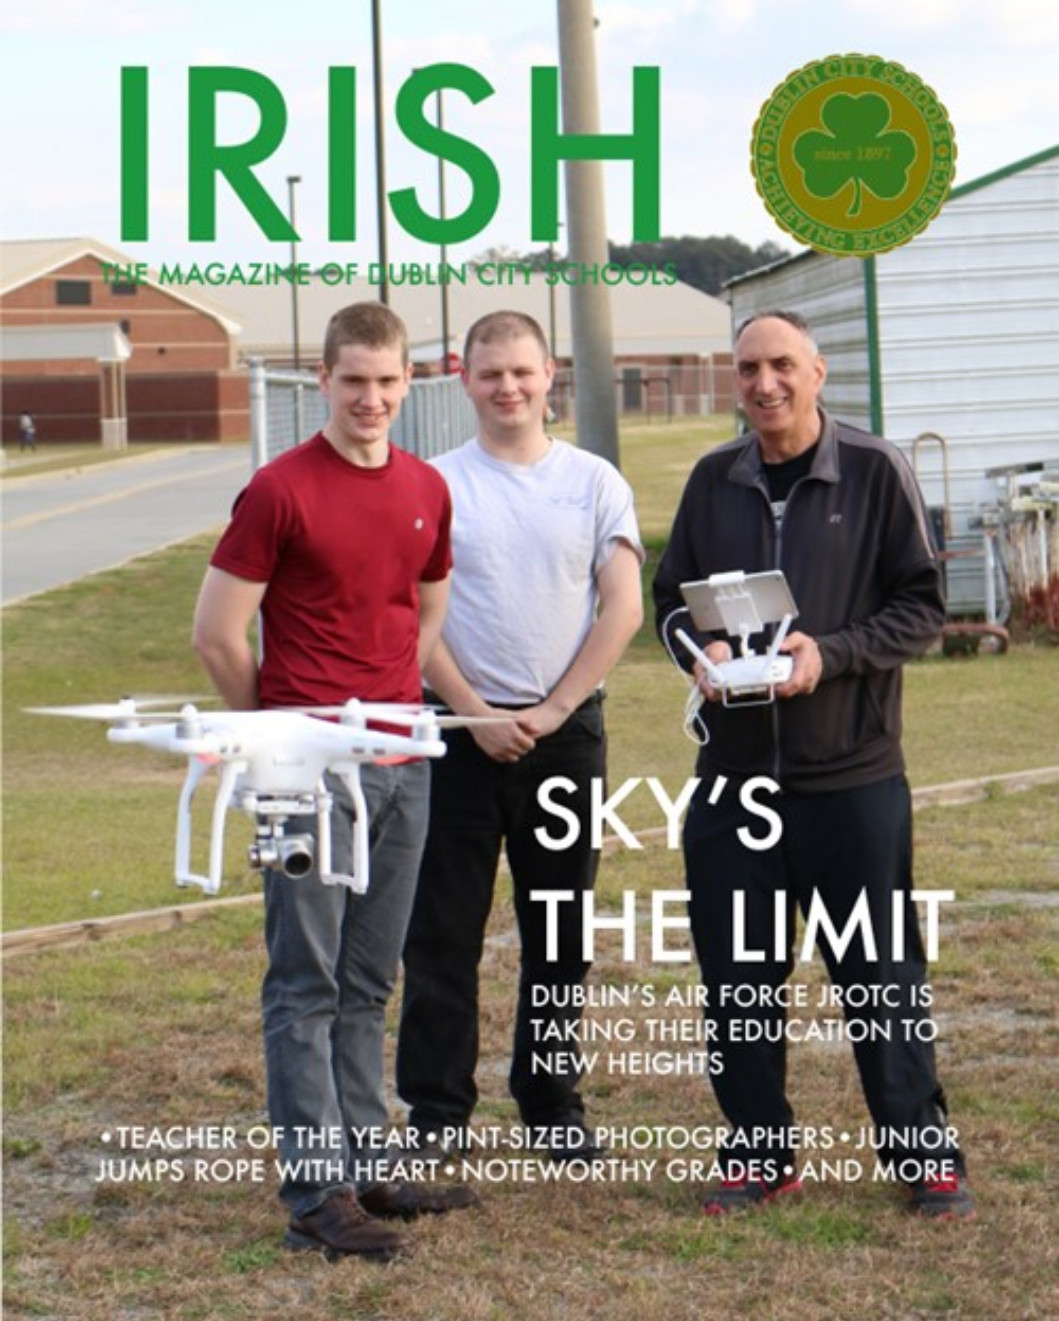 CHECK OUT OUR NEW IRISH MAGAZINE!